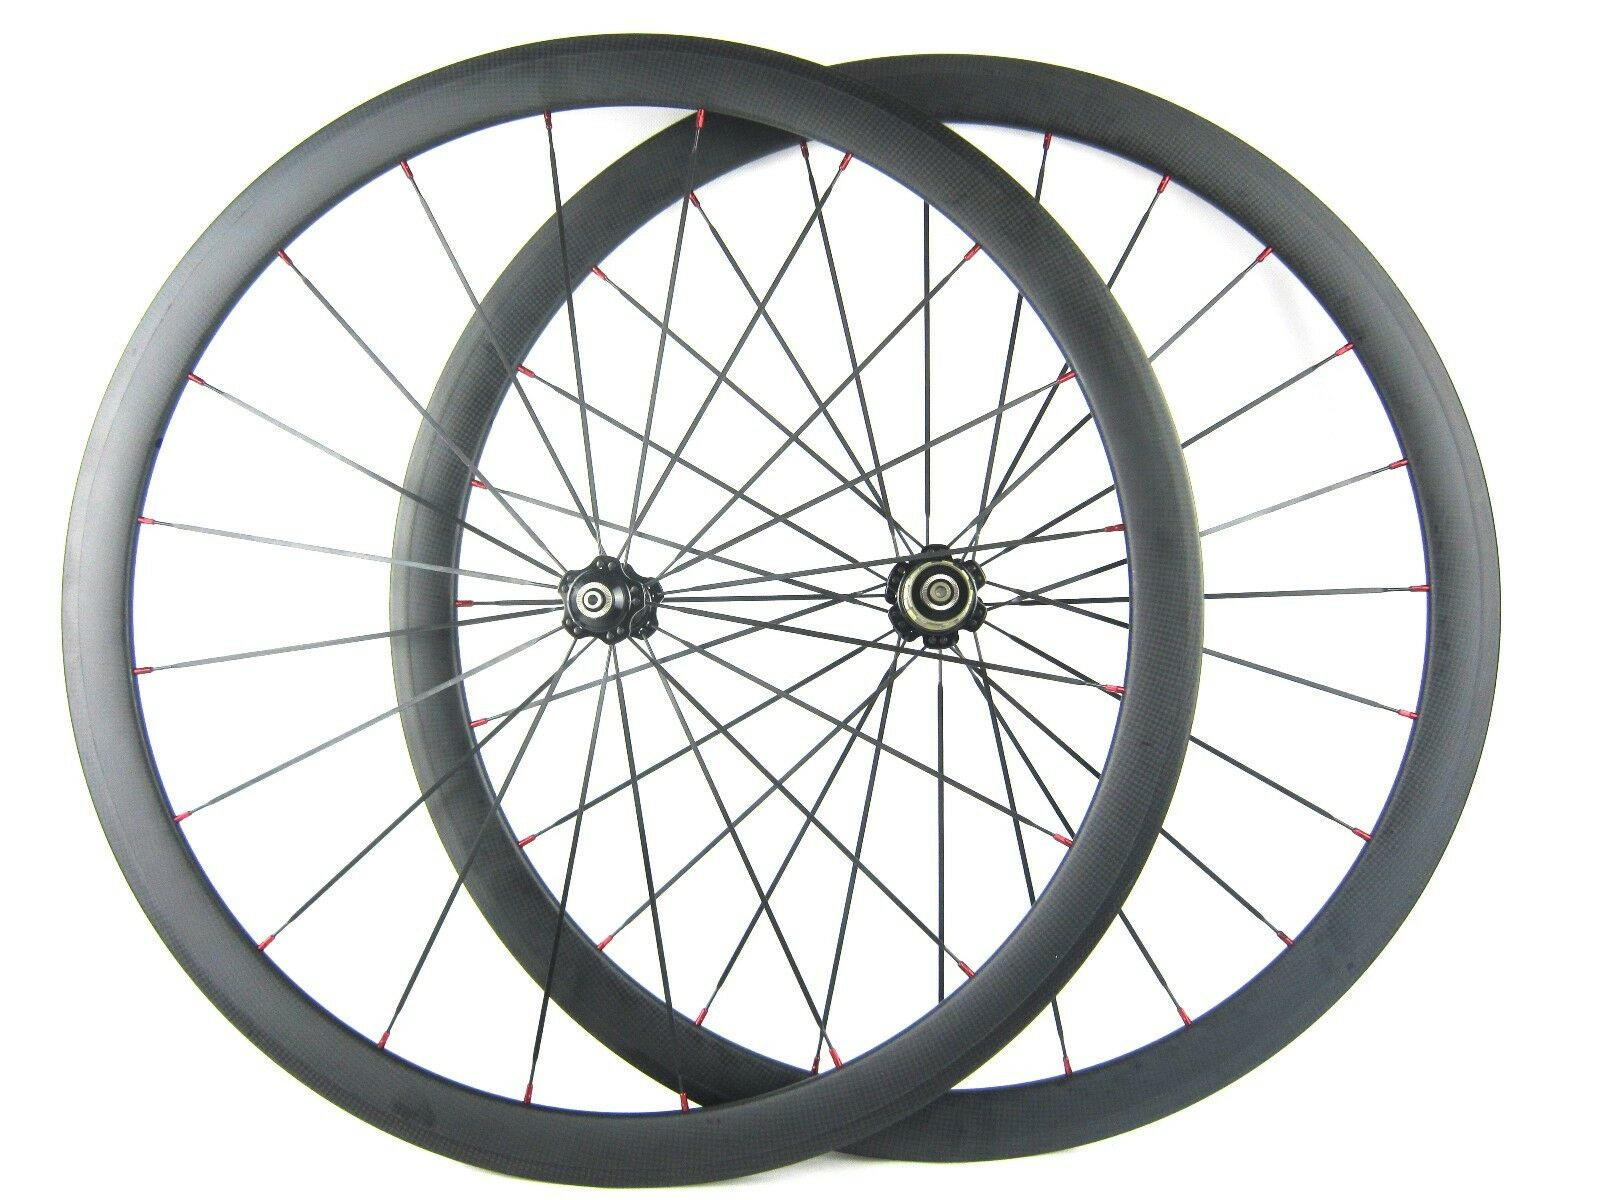 700c 38mm tubular full carbon fiber road racing bicycle wheels for shimano